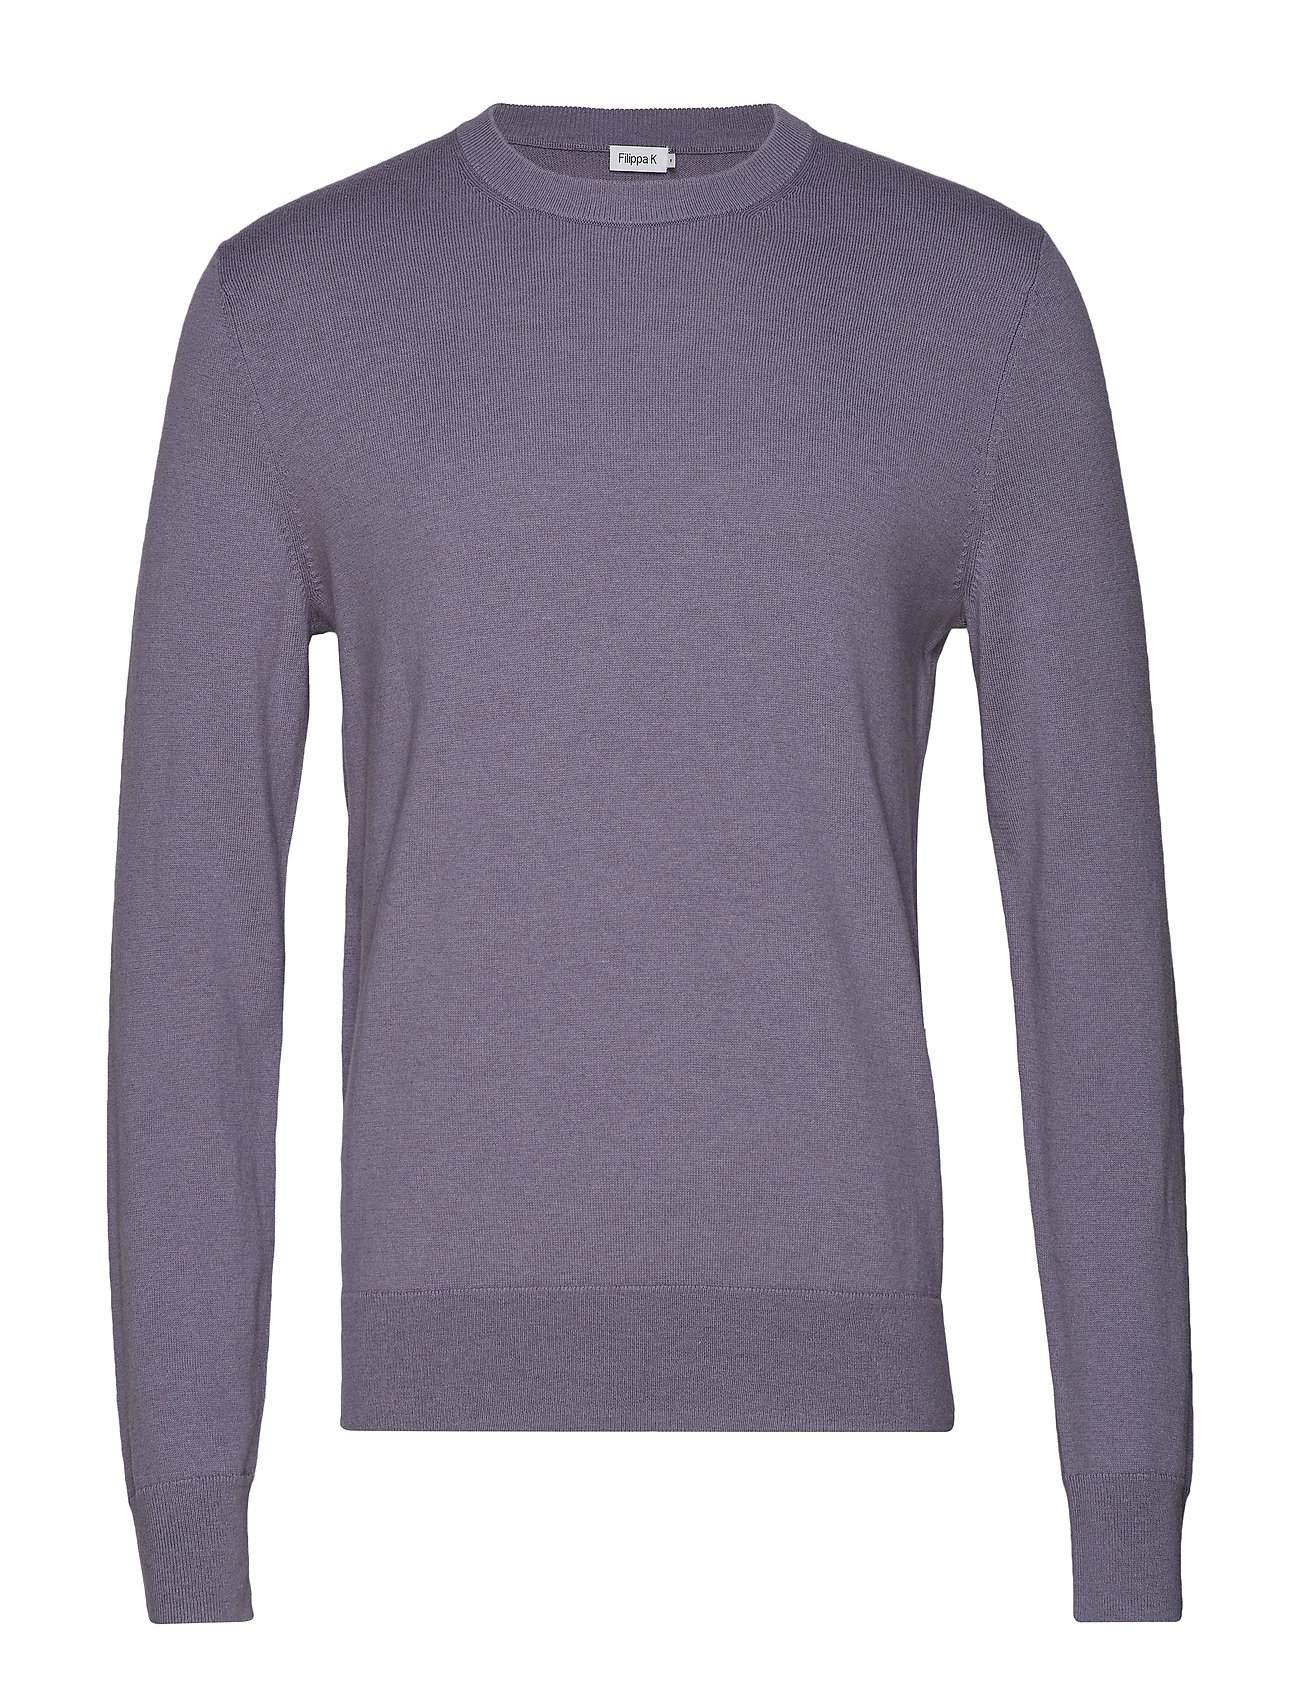 Filippa K M. Cotton Merino Basic Sweater - BLUESTONE